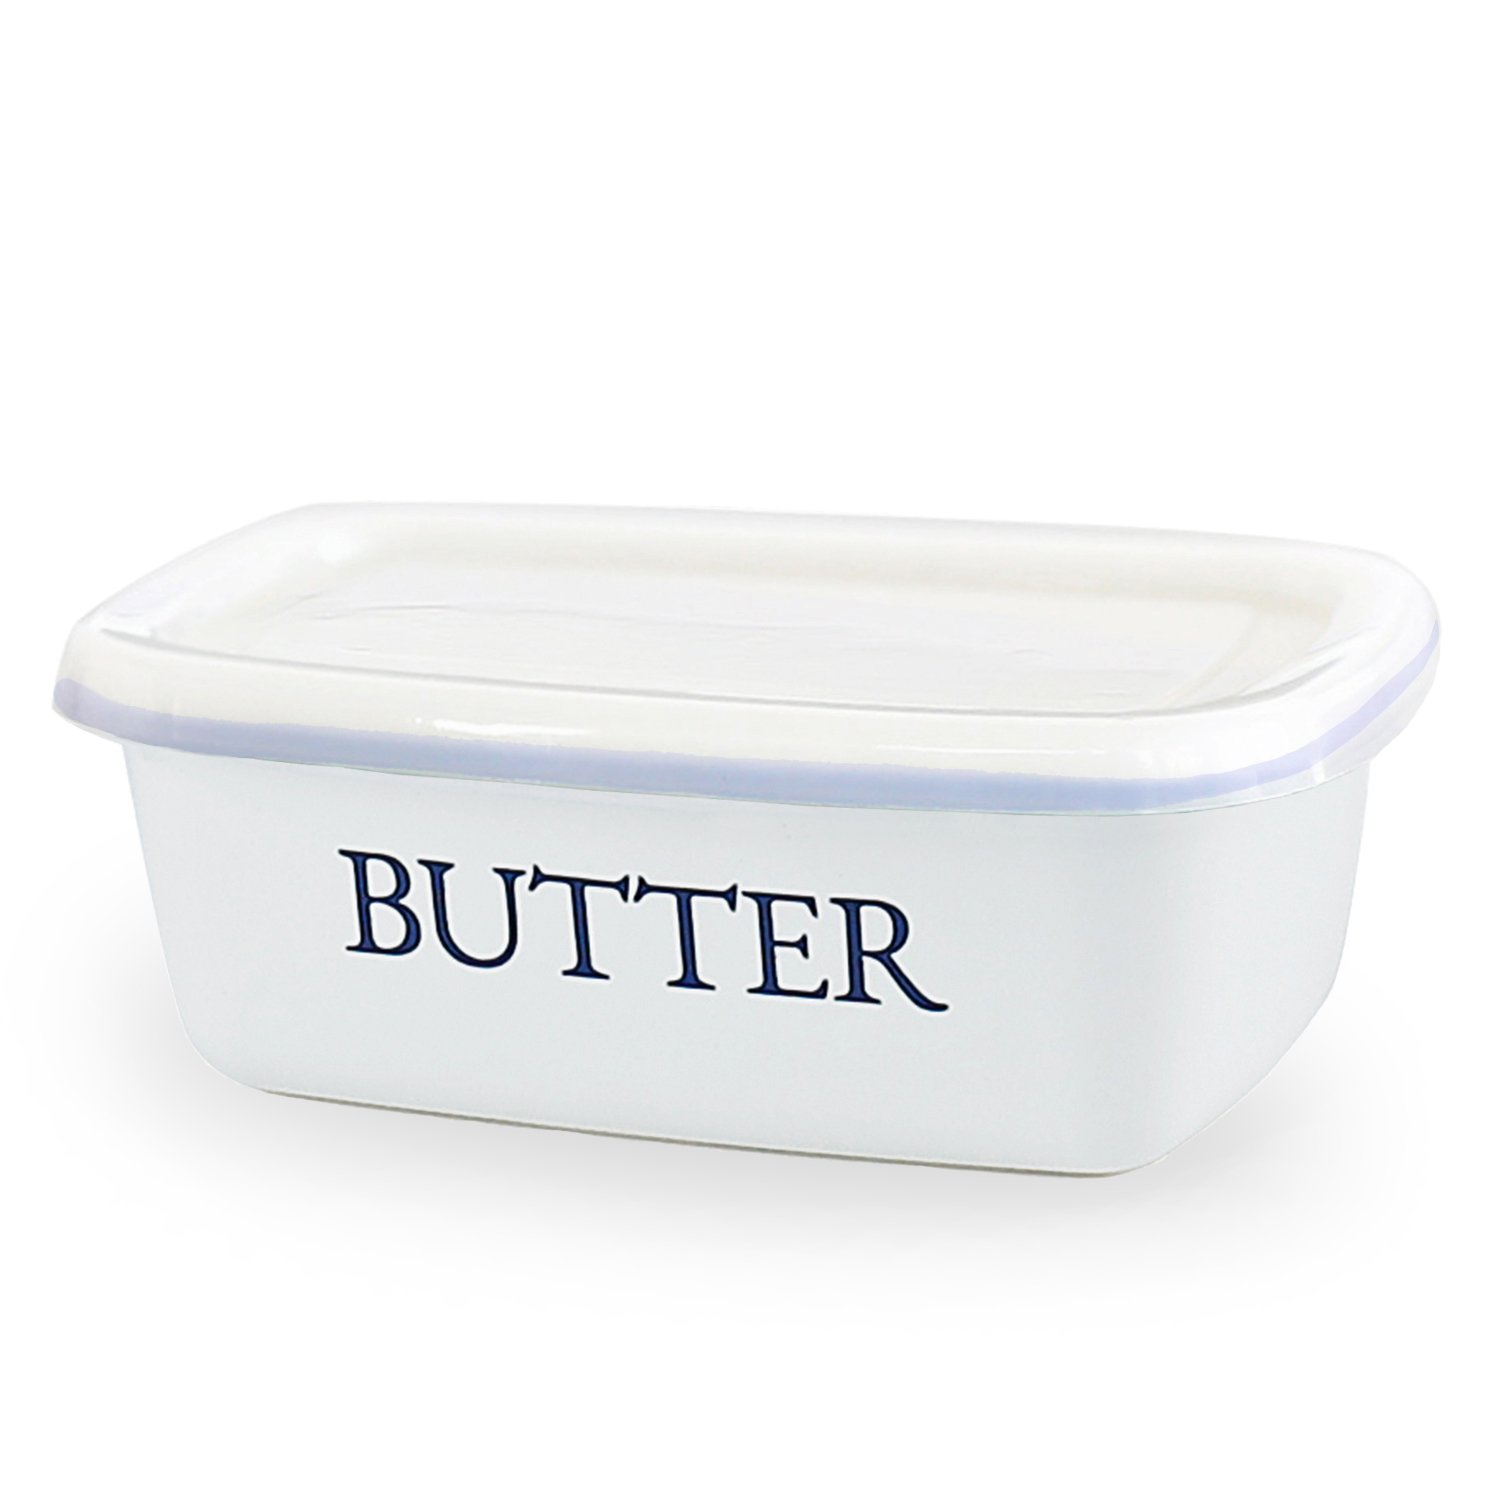 SveBake Butter Dish - Enamel Butter Boat Unbreakable Butter Keeper Container with Airtight Plastic Lid for Kitchen, White